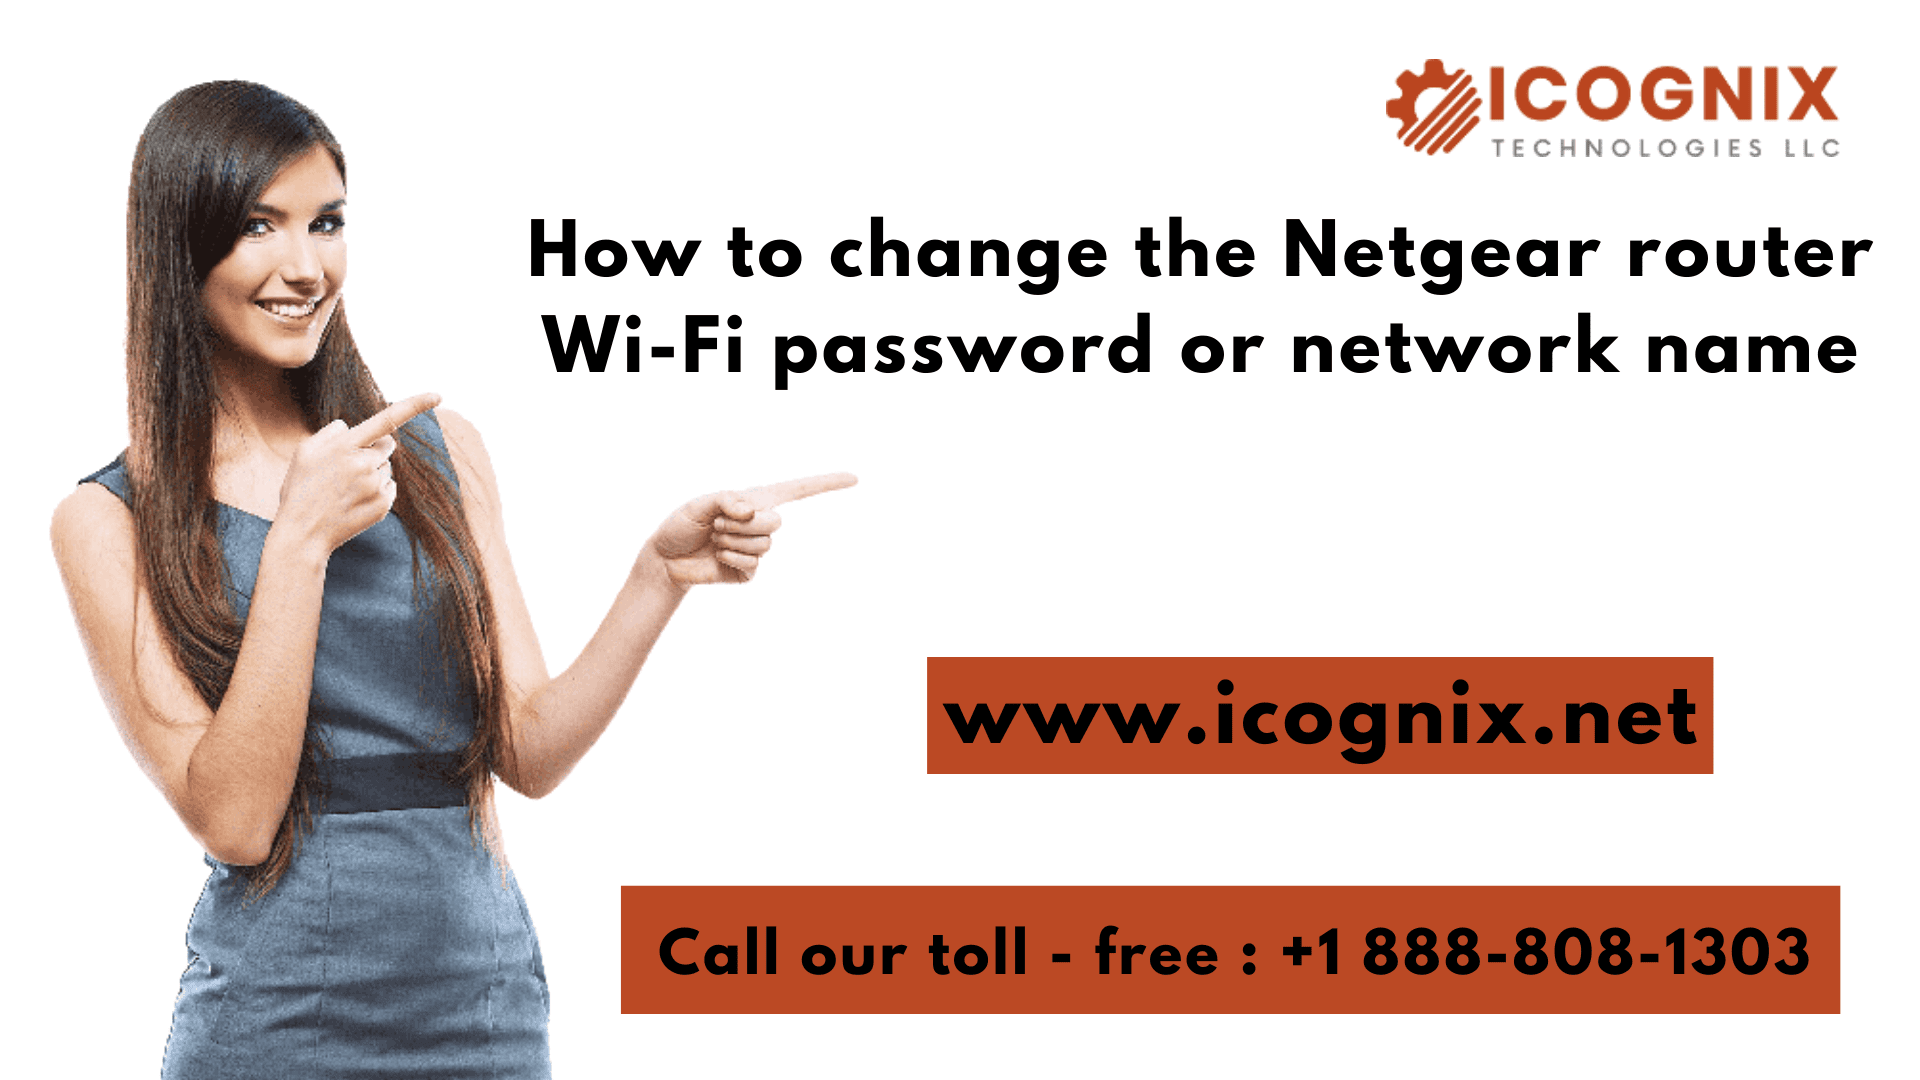 How to change the Netgear router Wi-Fi password or network name-Icognix